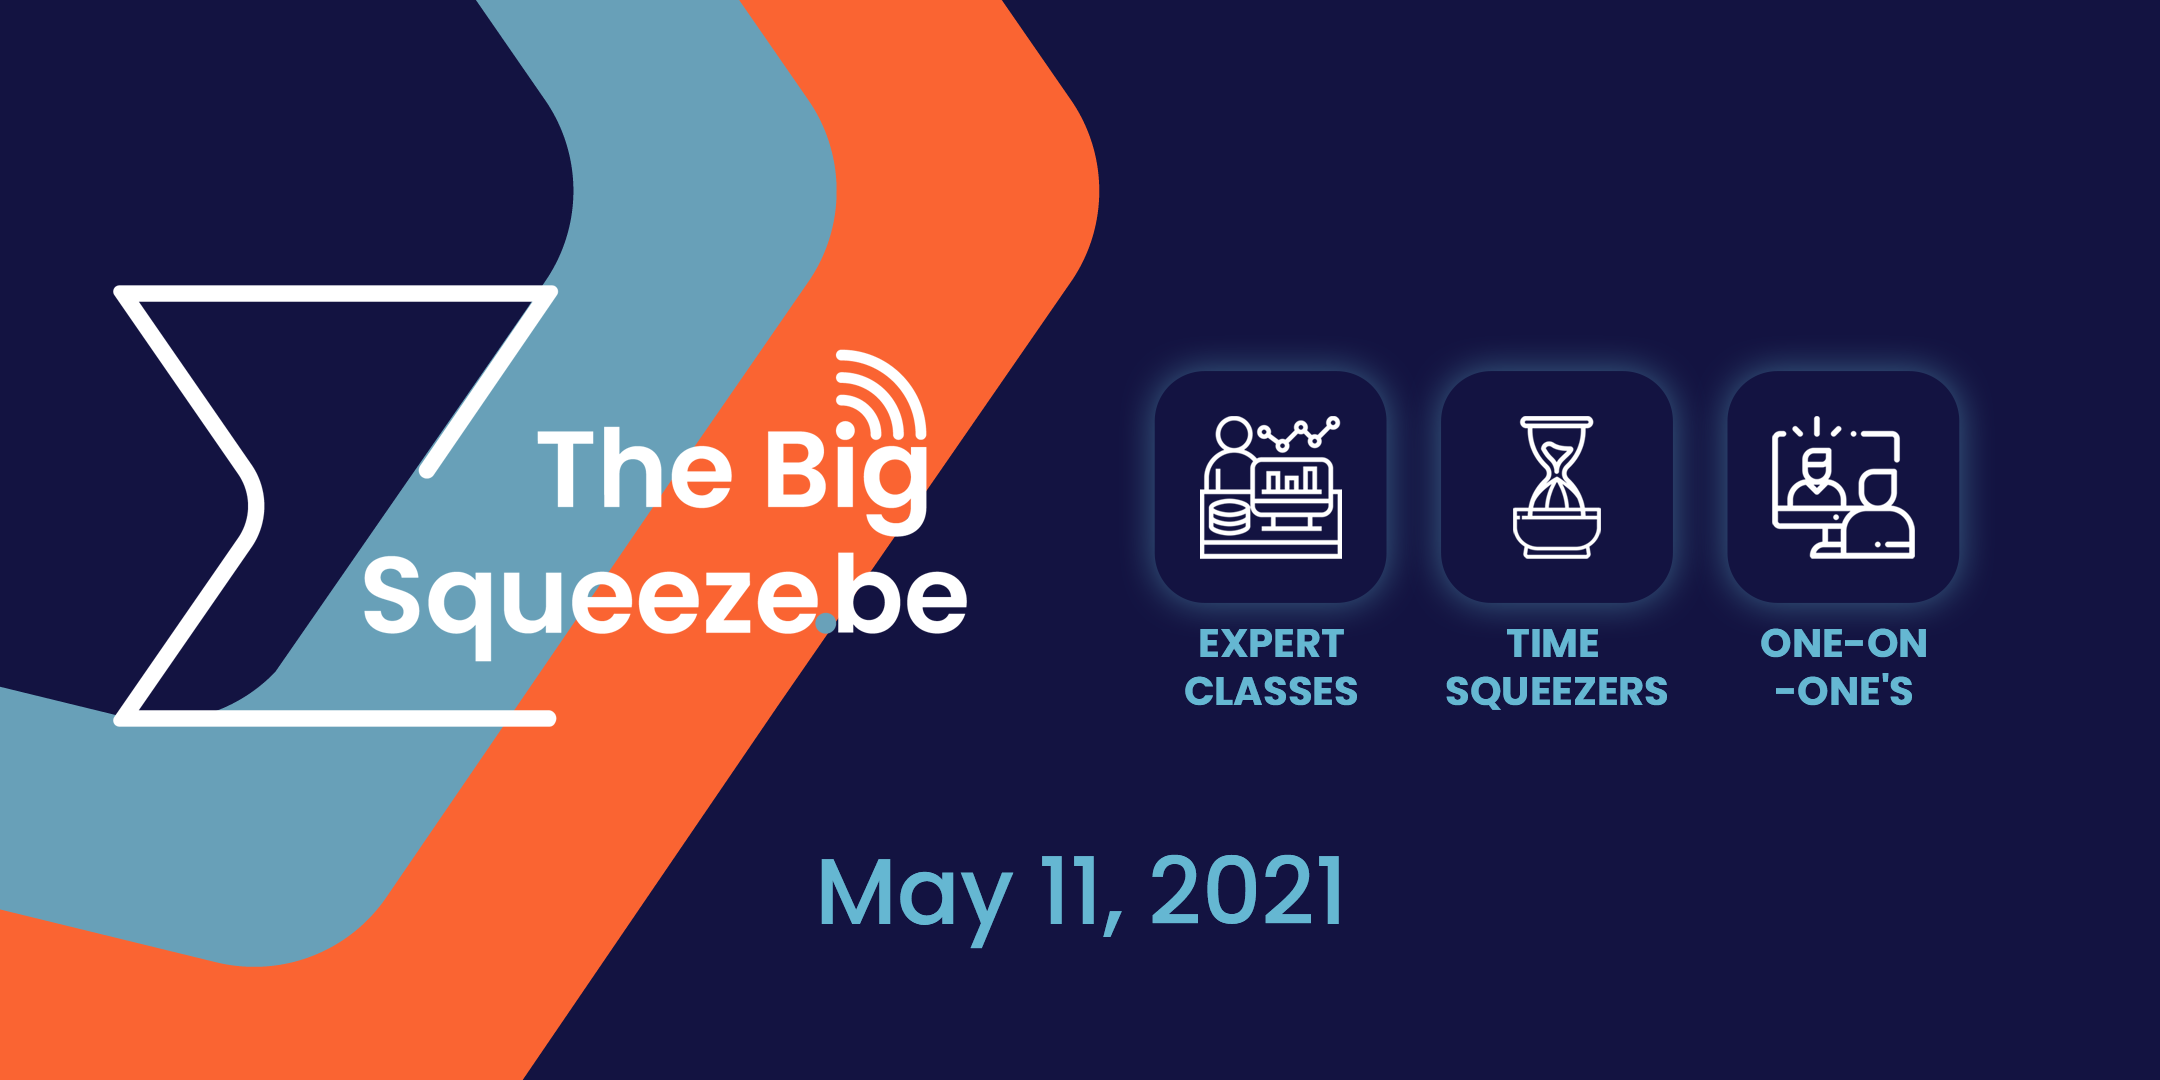 The Big Squeeze.be 2021